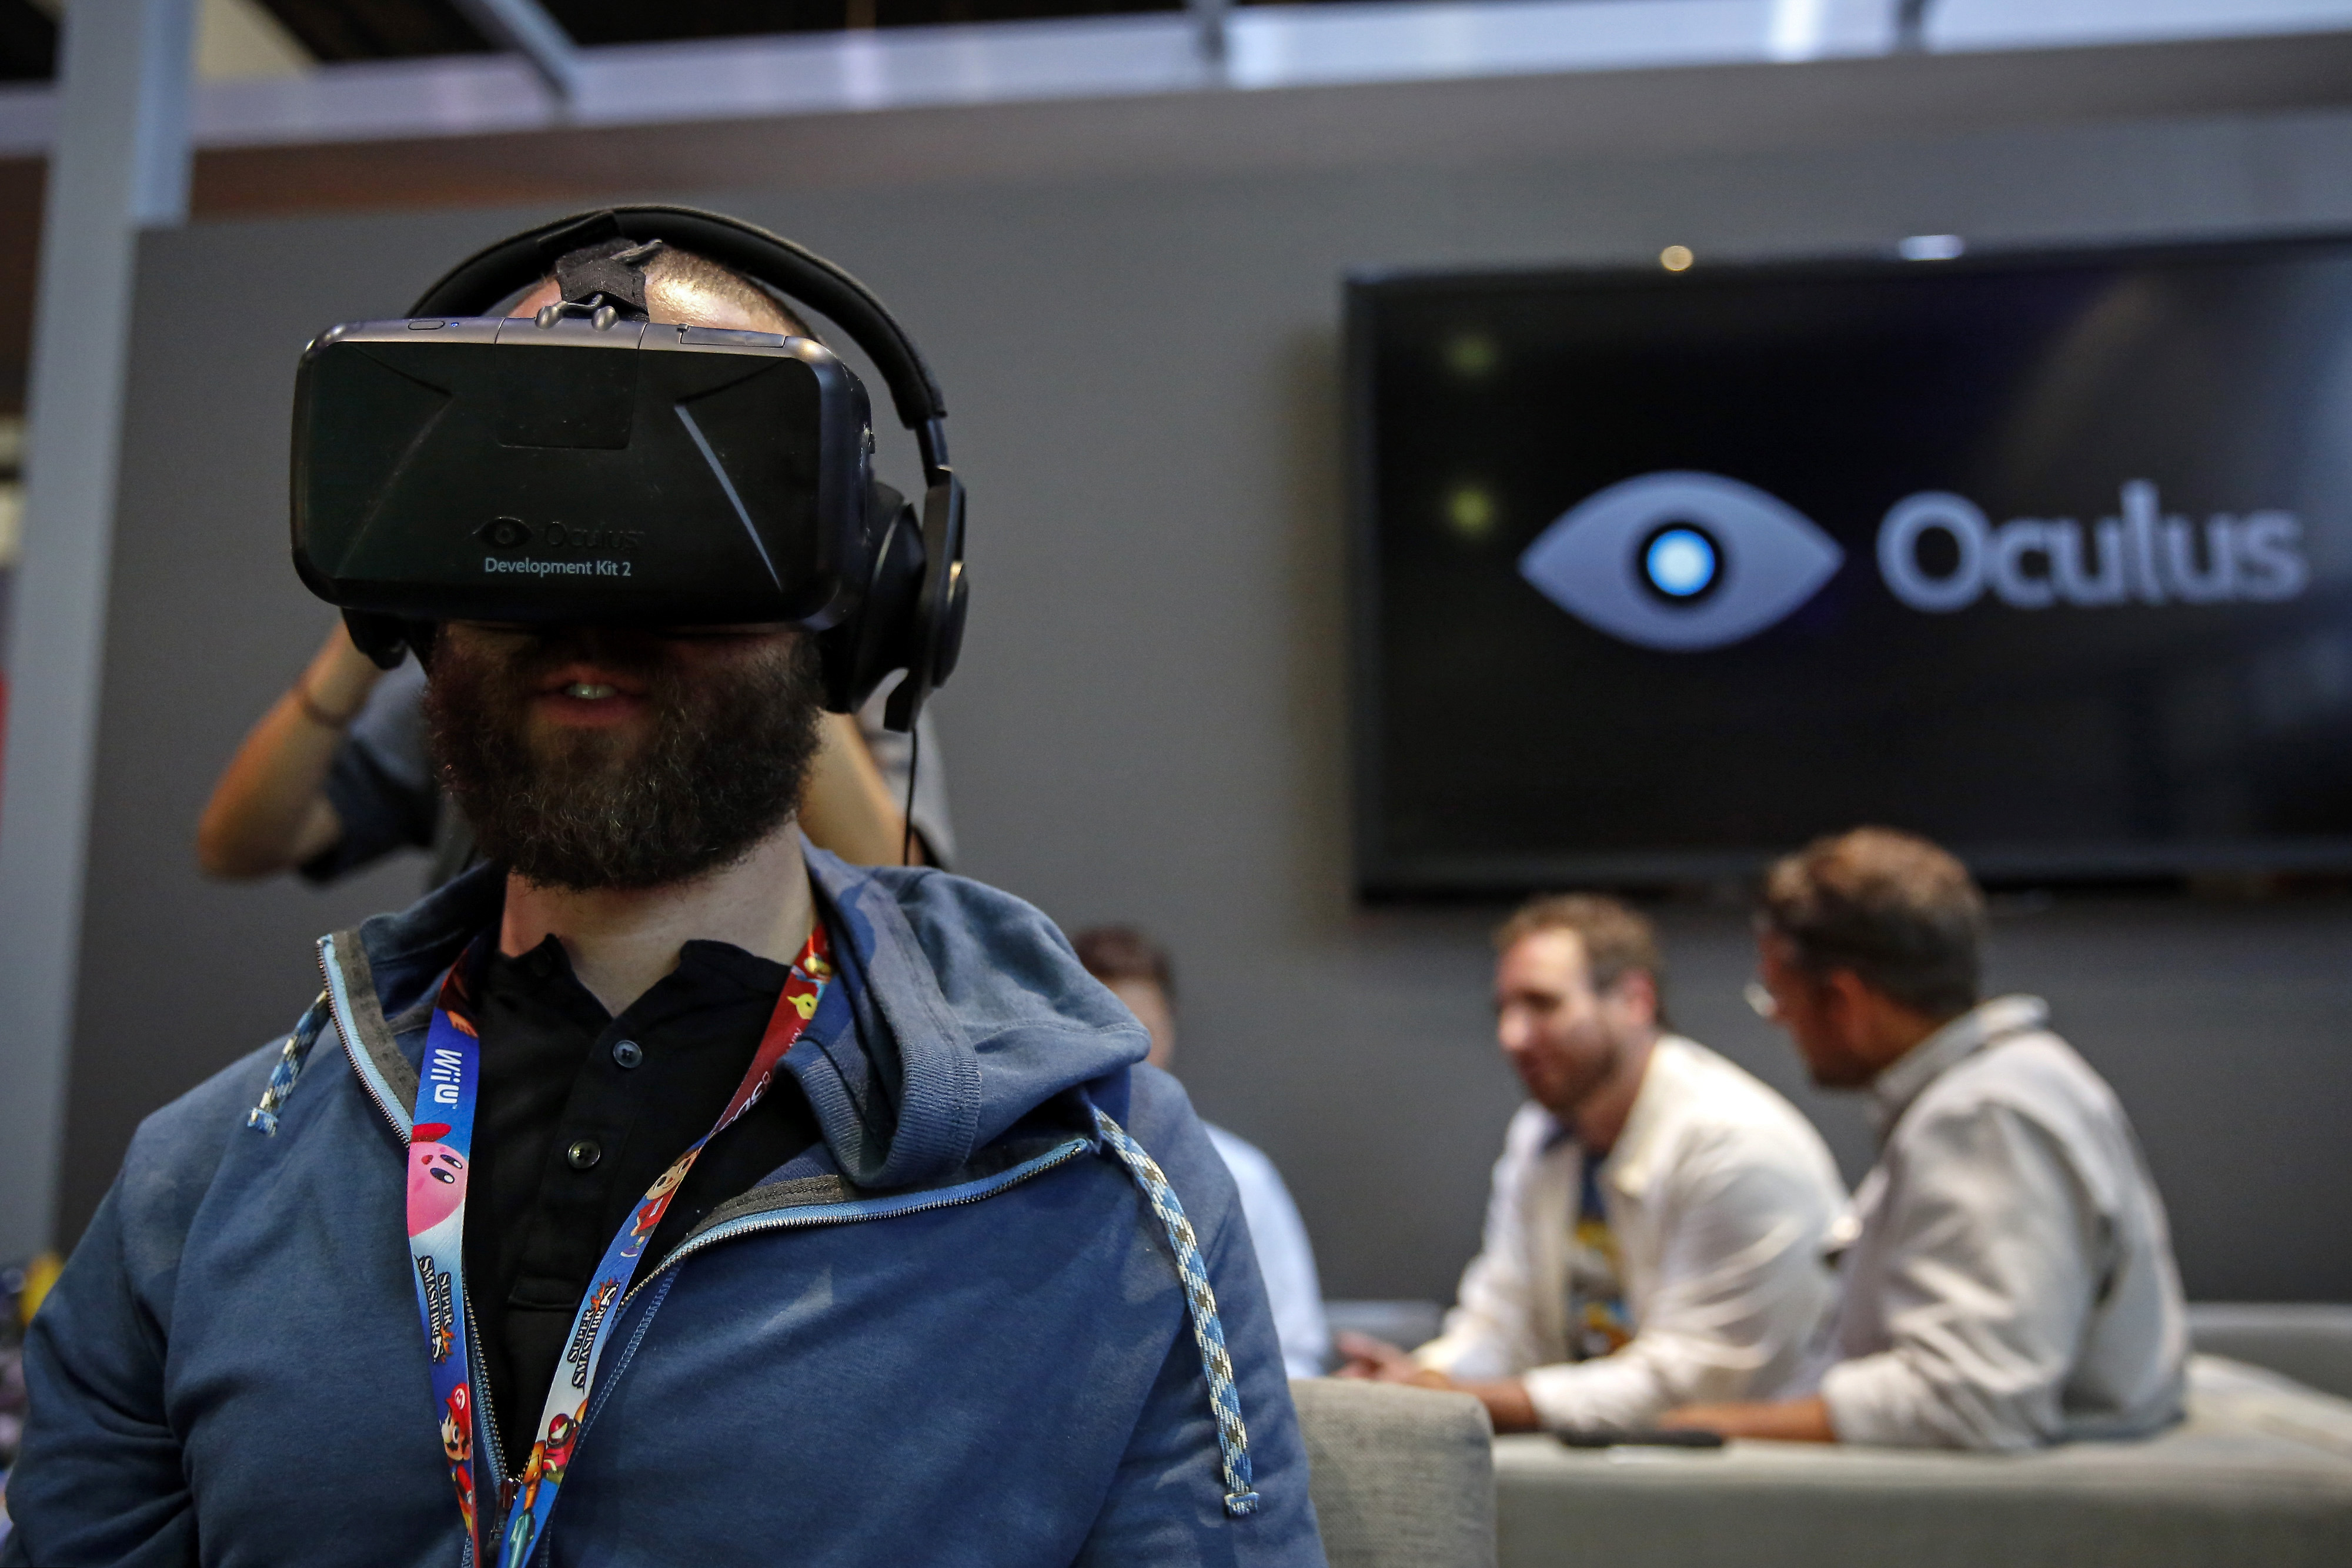 An attendee wears an Oculus VR Inc. Rift Development Kit 2 headset to play a video game during the E3 Electronic Entertainment Expo in Los Angeles, California, U.S., on Wednesday, June 11, 2014.